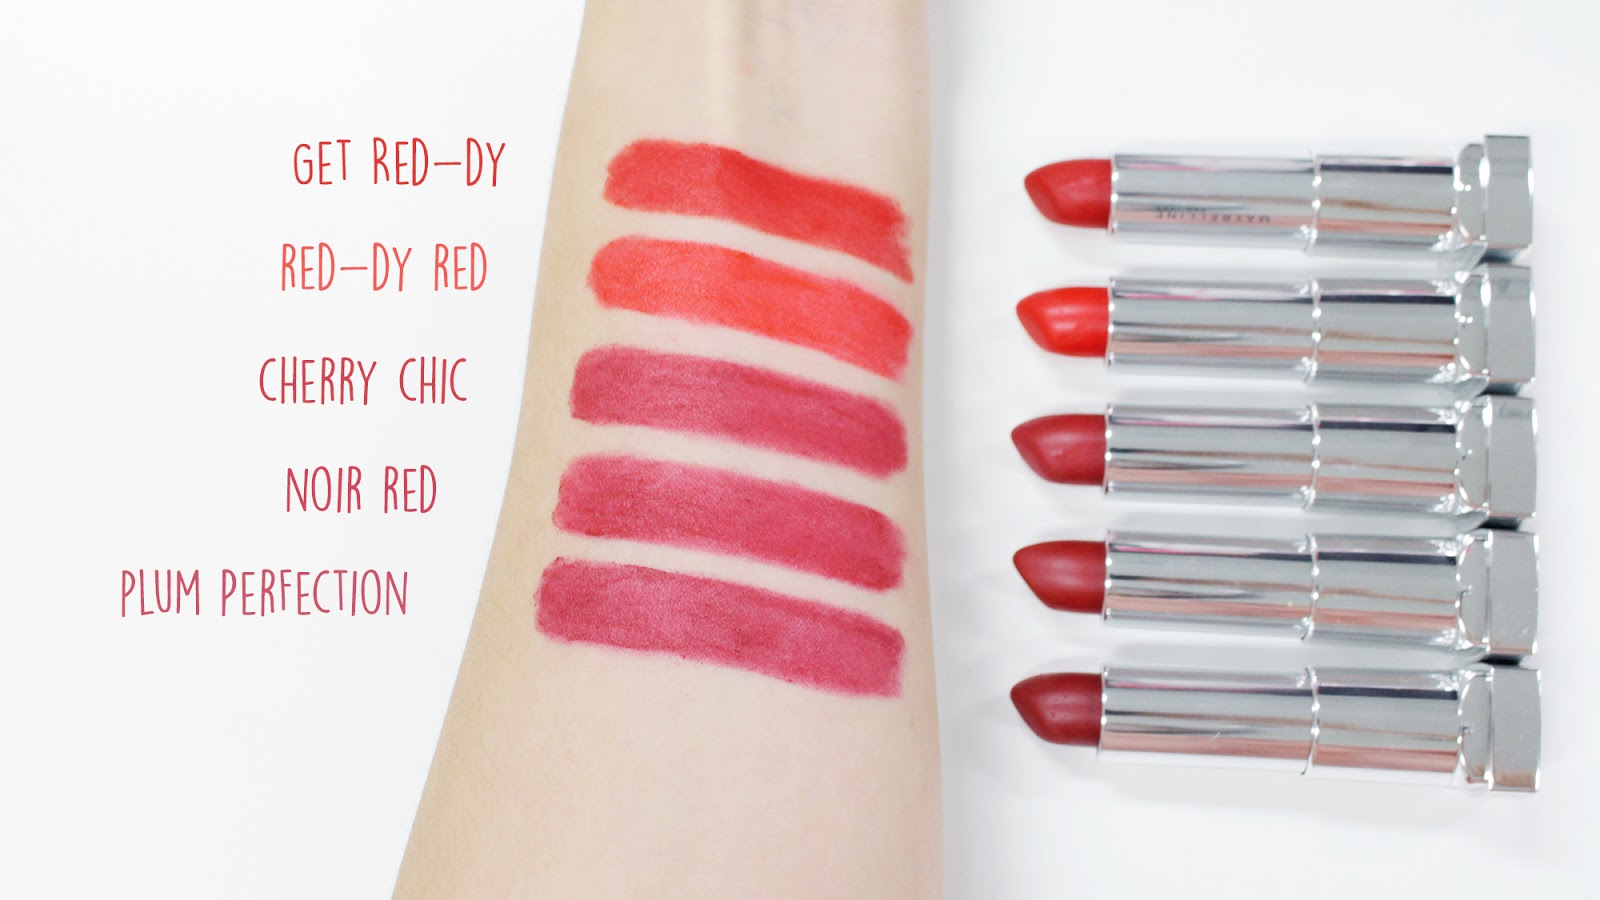 Maybelline The Powder Mattes Red Shades Swatches | www.bigdreamerblog.com